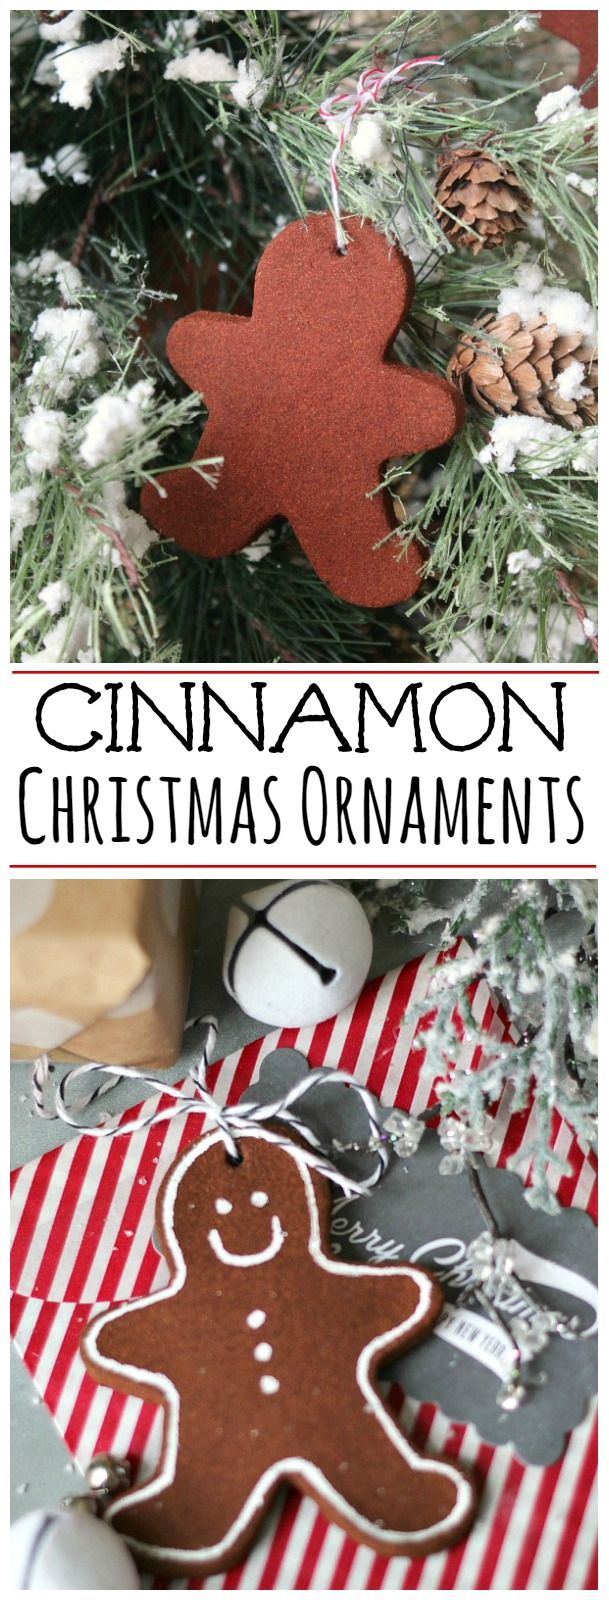 Cinnamon Christmas Ornaments Title